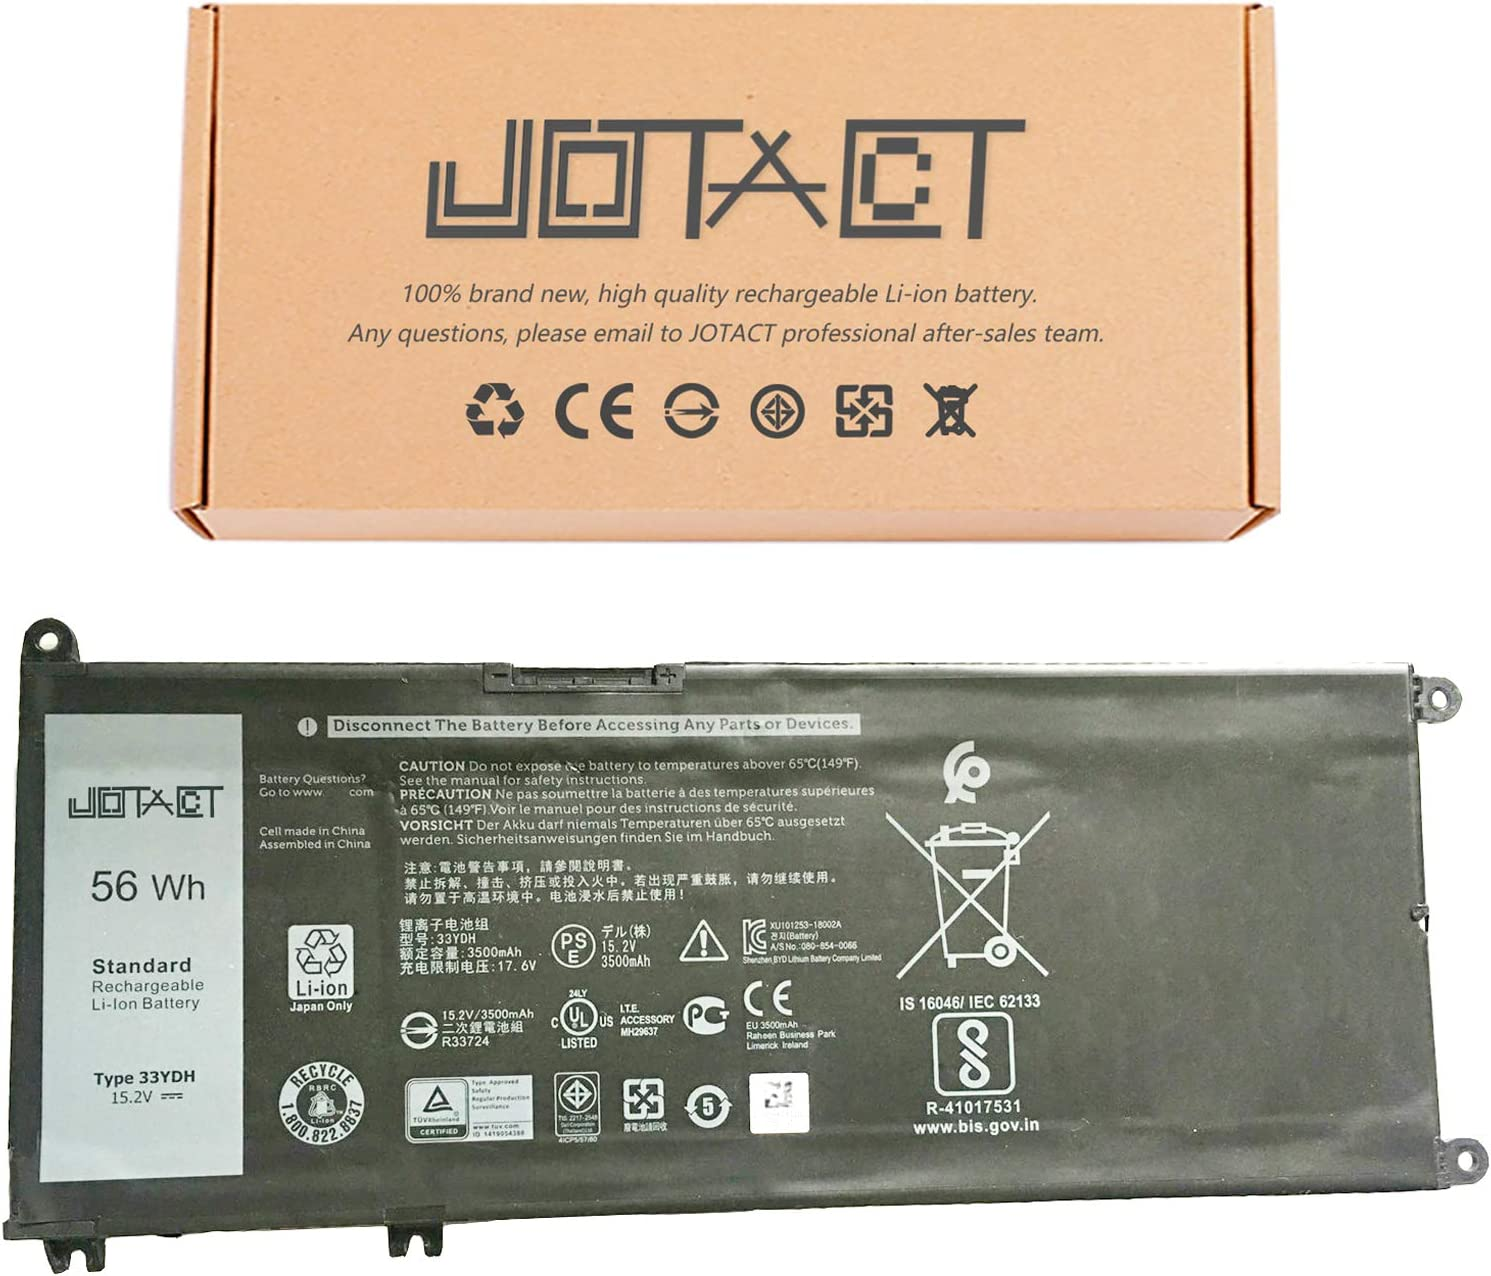 JOTACT 33YDH (15.2V 56W/3500mAh 4-Cell) Laptop Battery Compatible with Dell Inspiron 17 7000 7773 15 7570 7577 G3 15 3579 17 3779 G5 15 5587 G7 15 7588 Latitude 15 3590 Series Notebook 99NF2 PVHT1